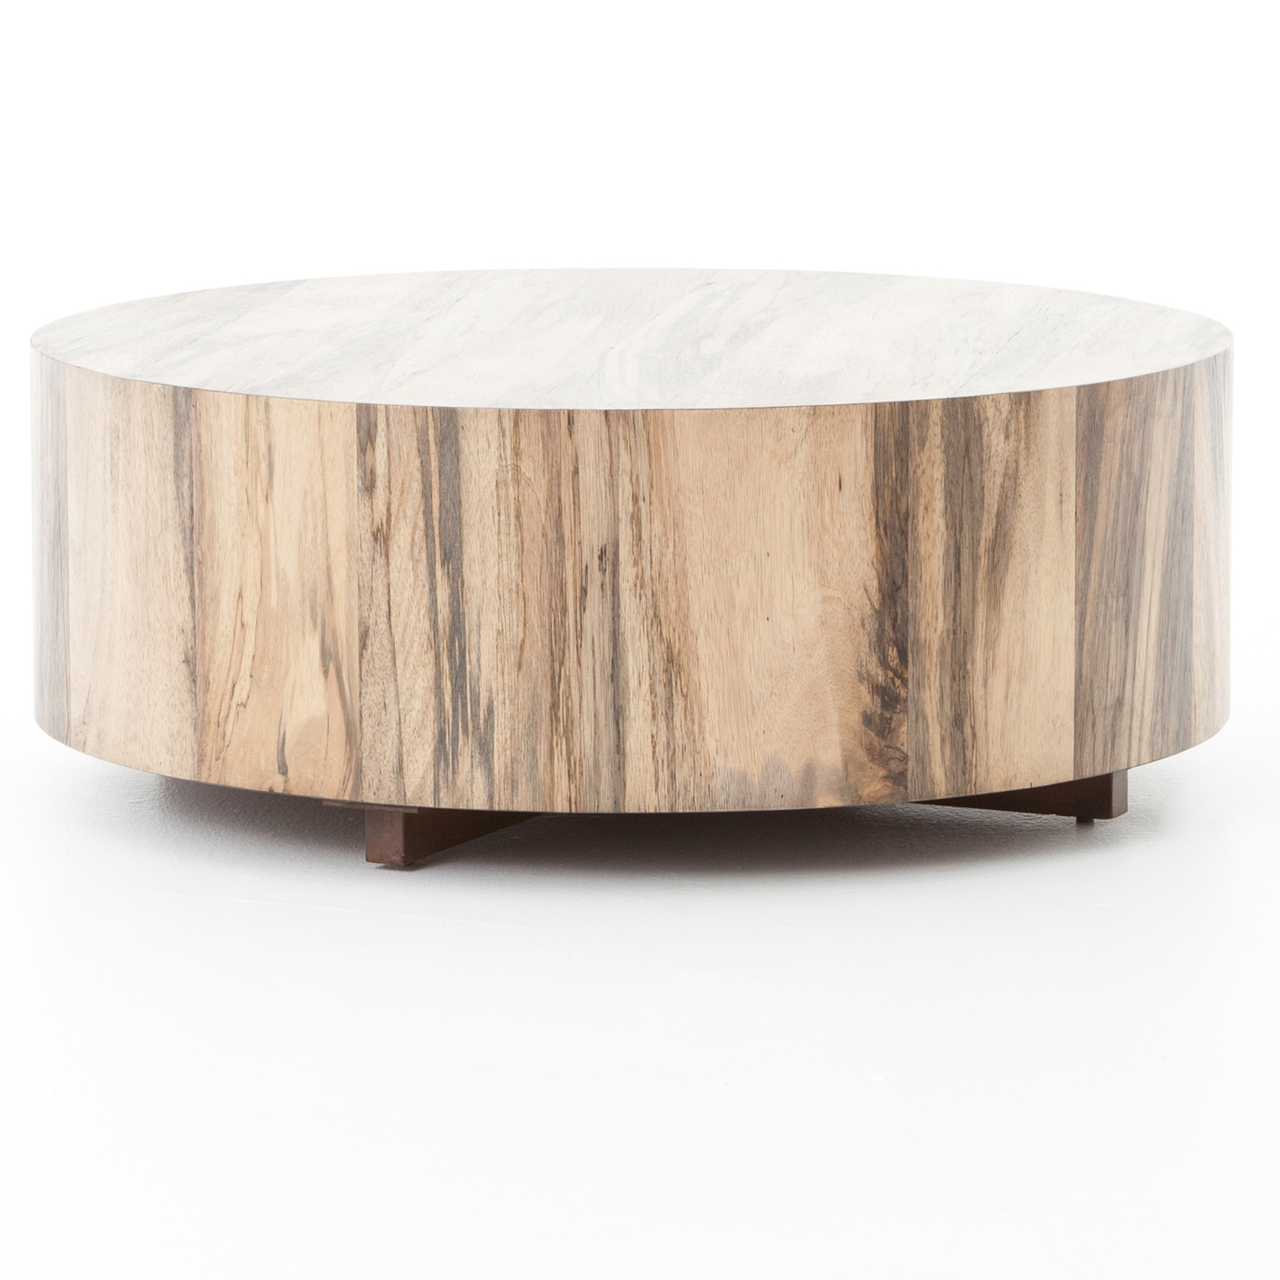 Picture of: Hudson Spalted Rustic Wood Block Round Coffee Table Zin Home